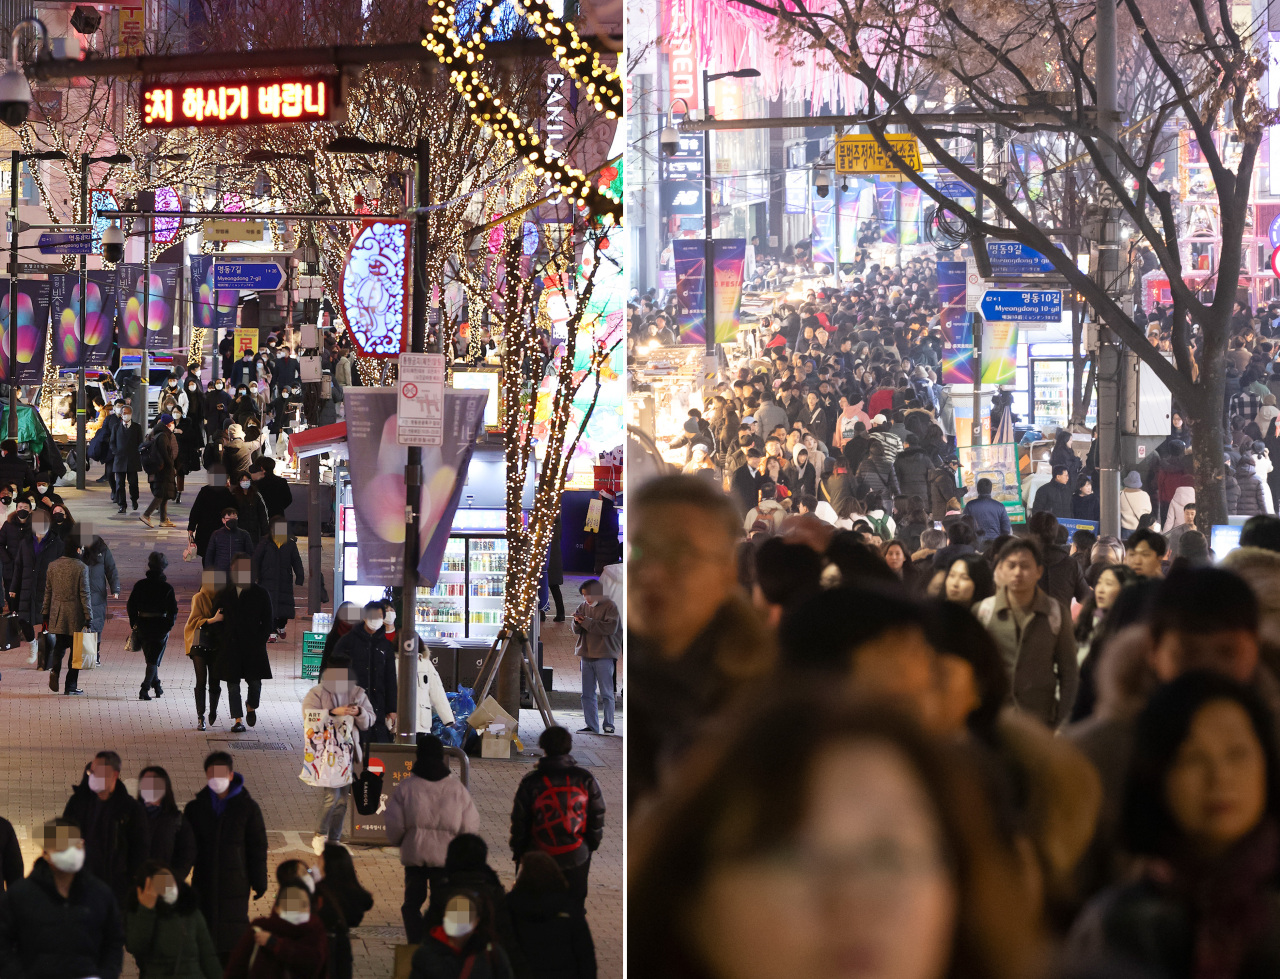 Noticeably fewer people were in Myeong-dong on Christmas Day in 2020 (left) compared to one year ago, before the coronavirus pandemic. (Yonhap)